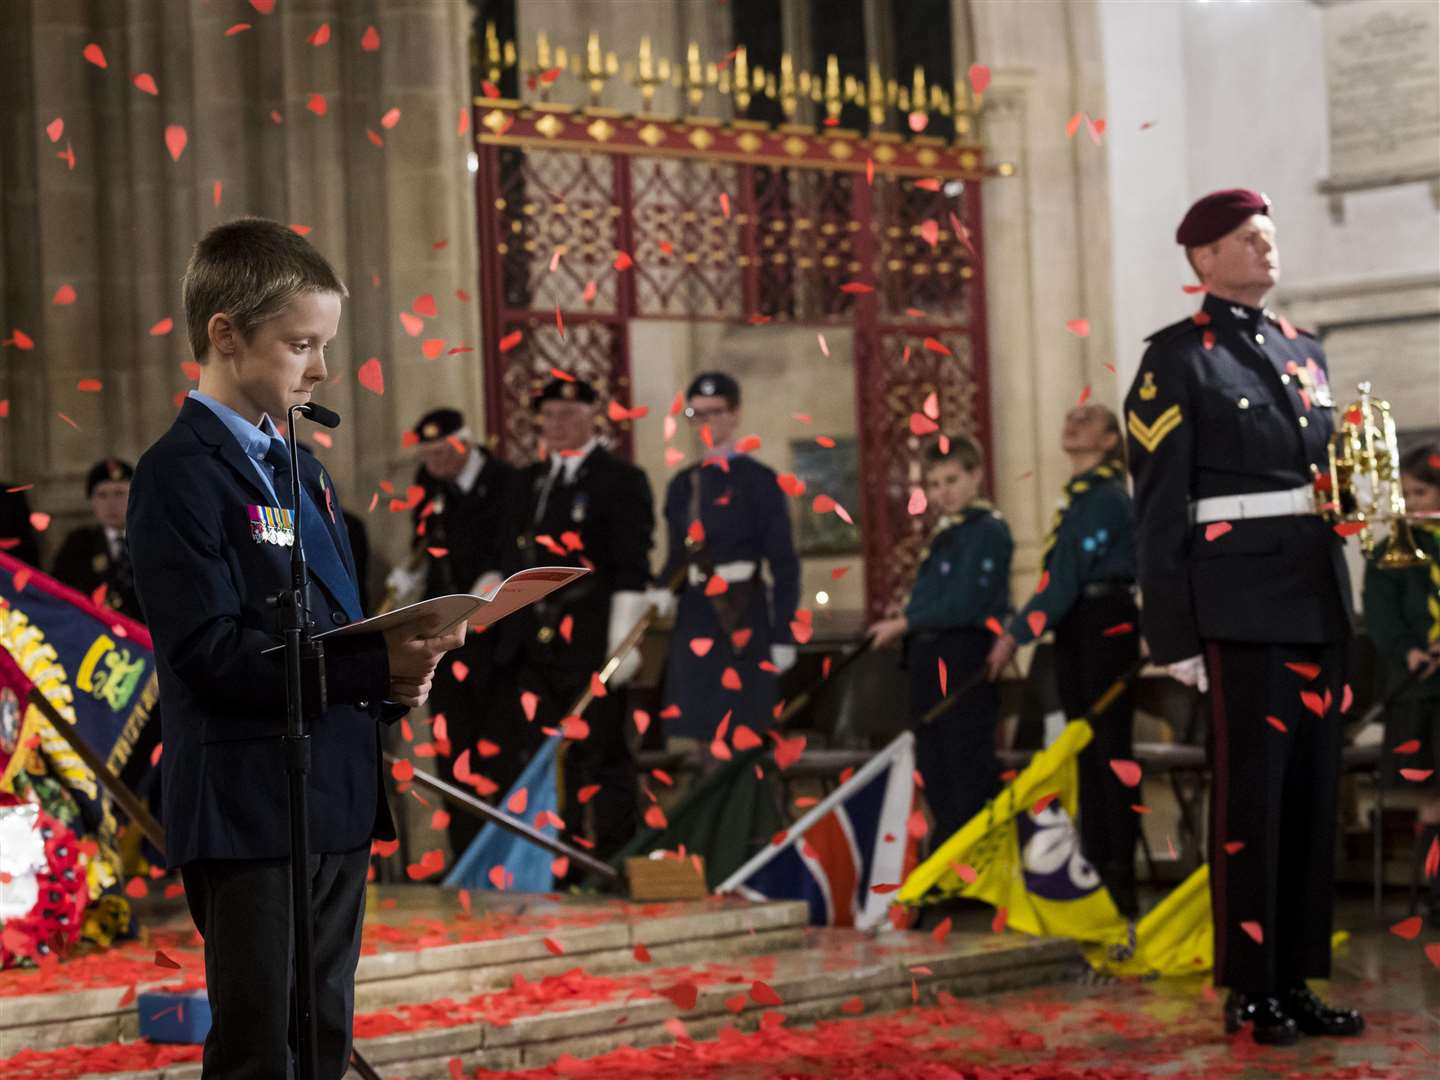 The service included a mass drop of poppies. Picture: Cpl Jamie Hart, British Army.